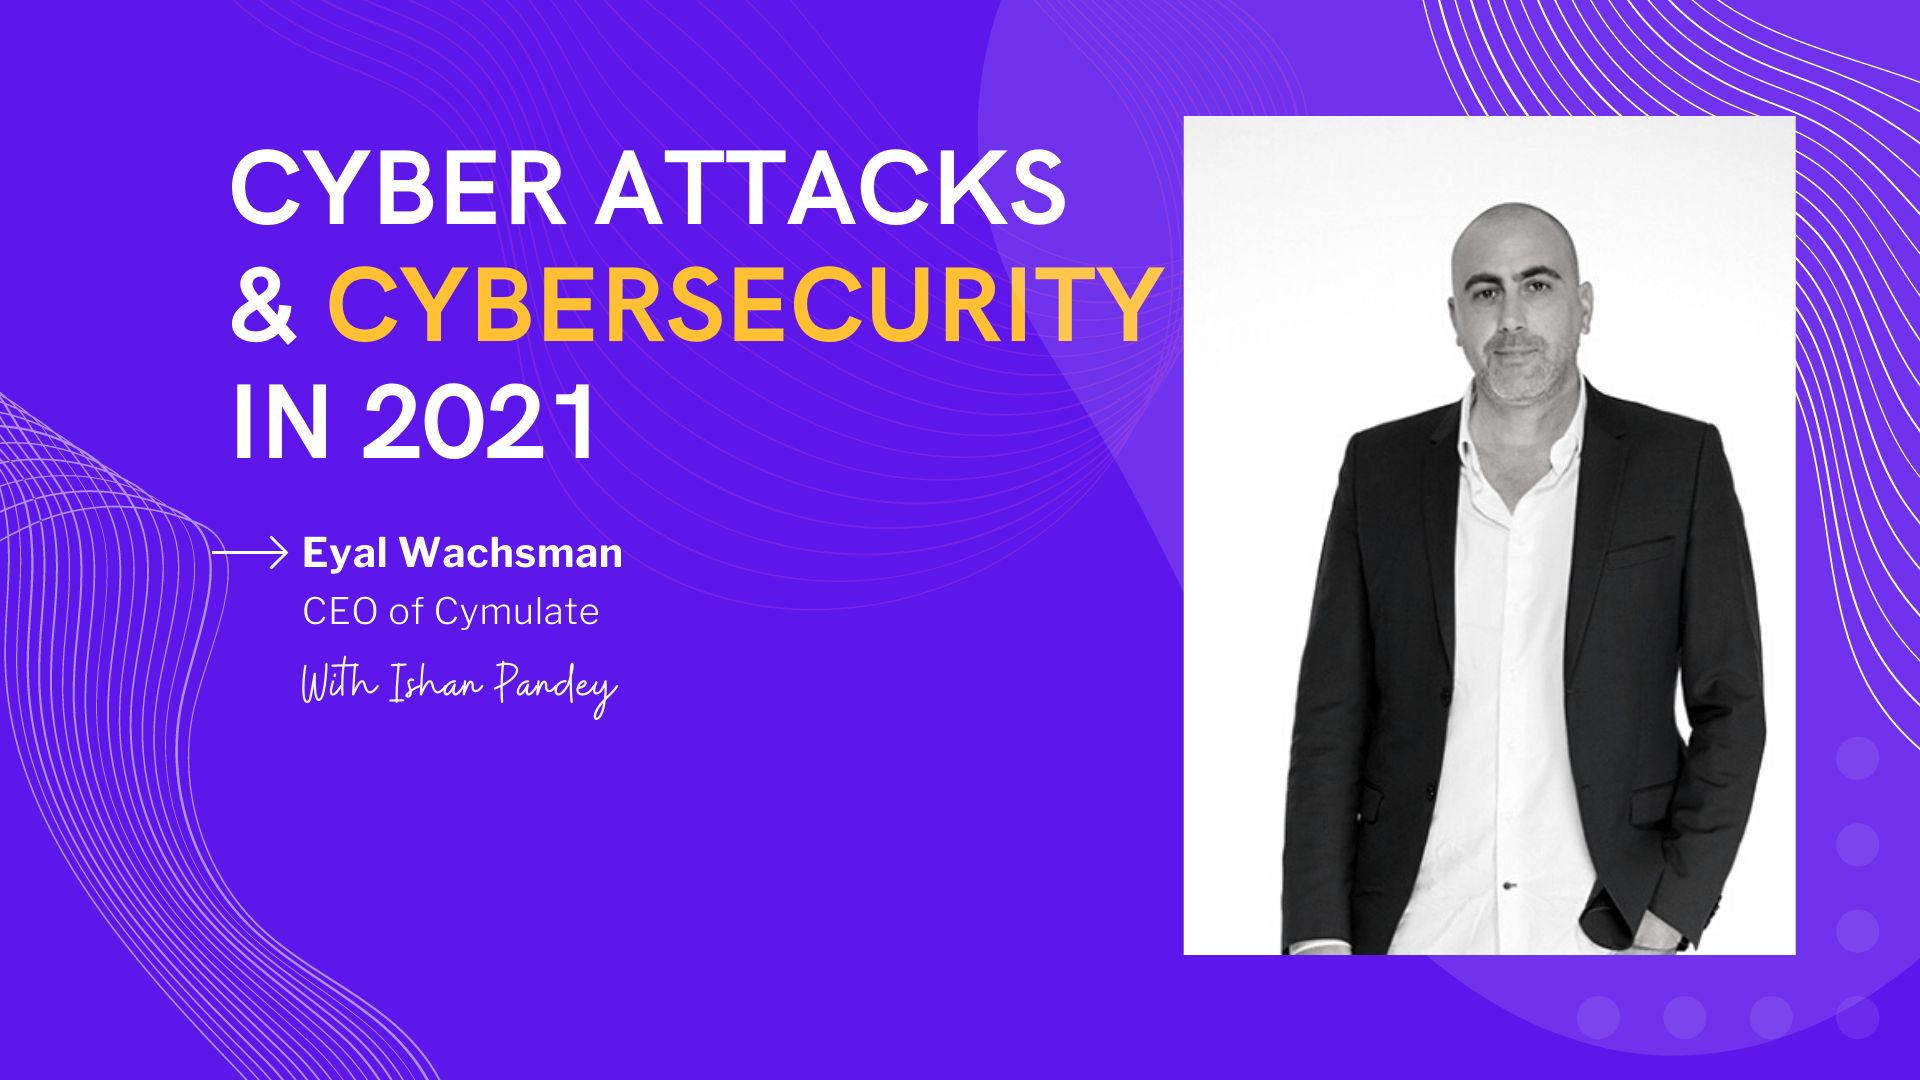 /on-cyberattacks-and-data-security-solutions-with-eyal-wachsman-pj2n3w9p feature image